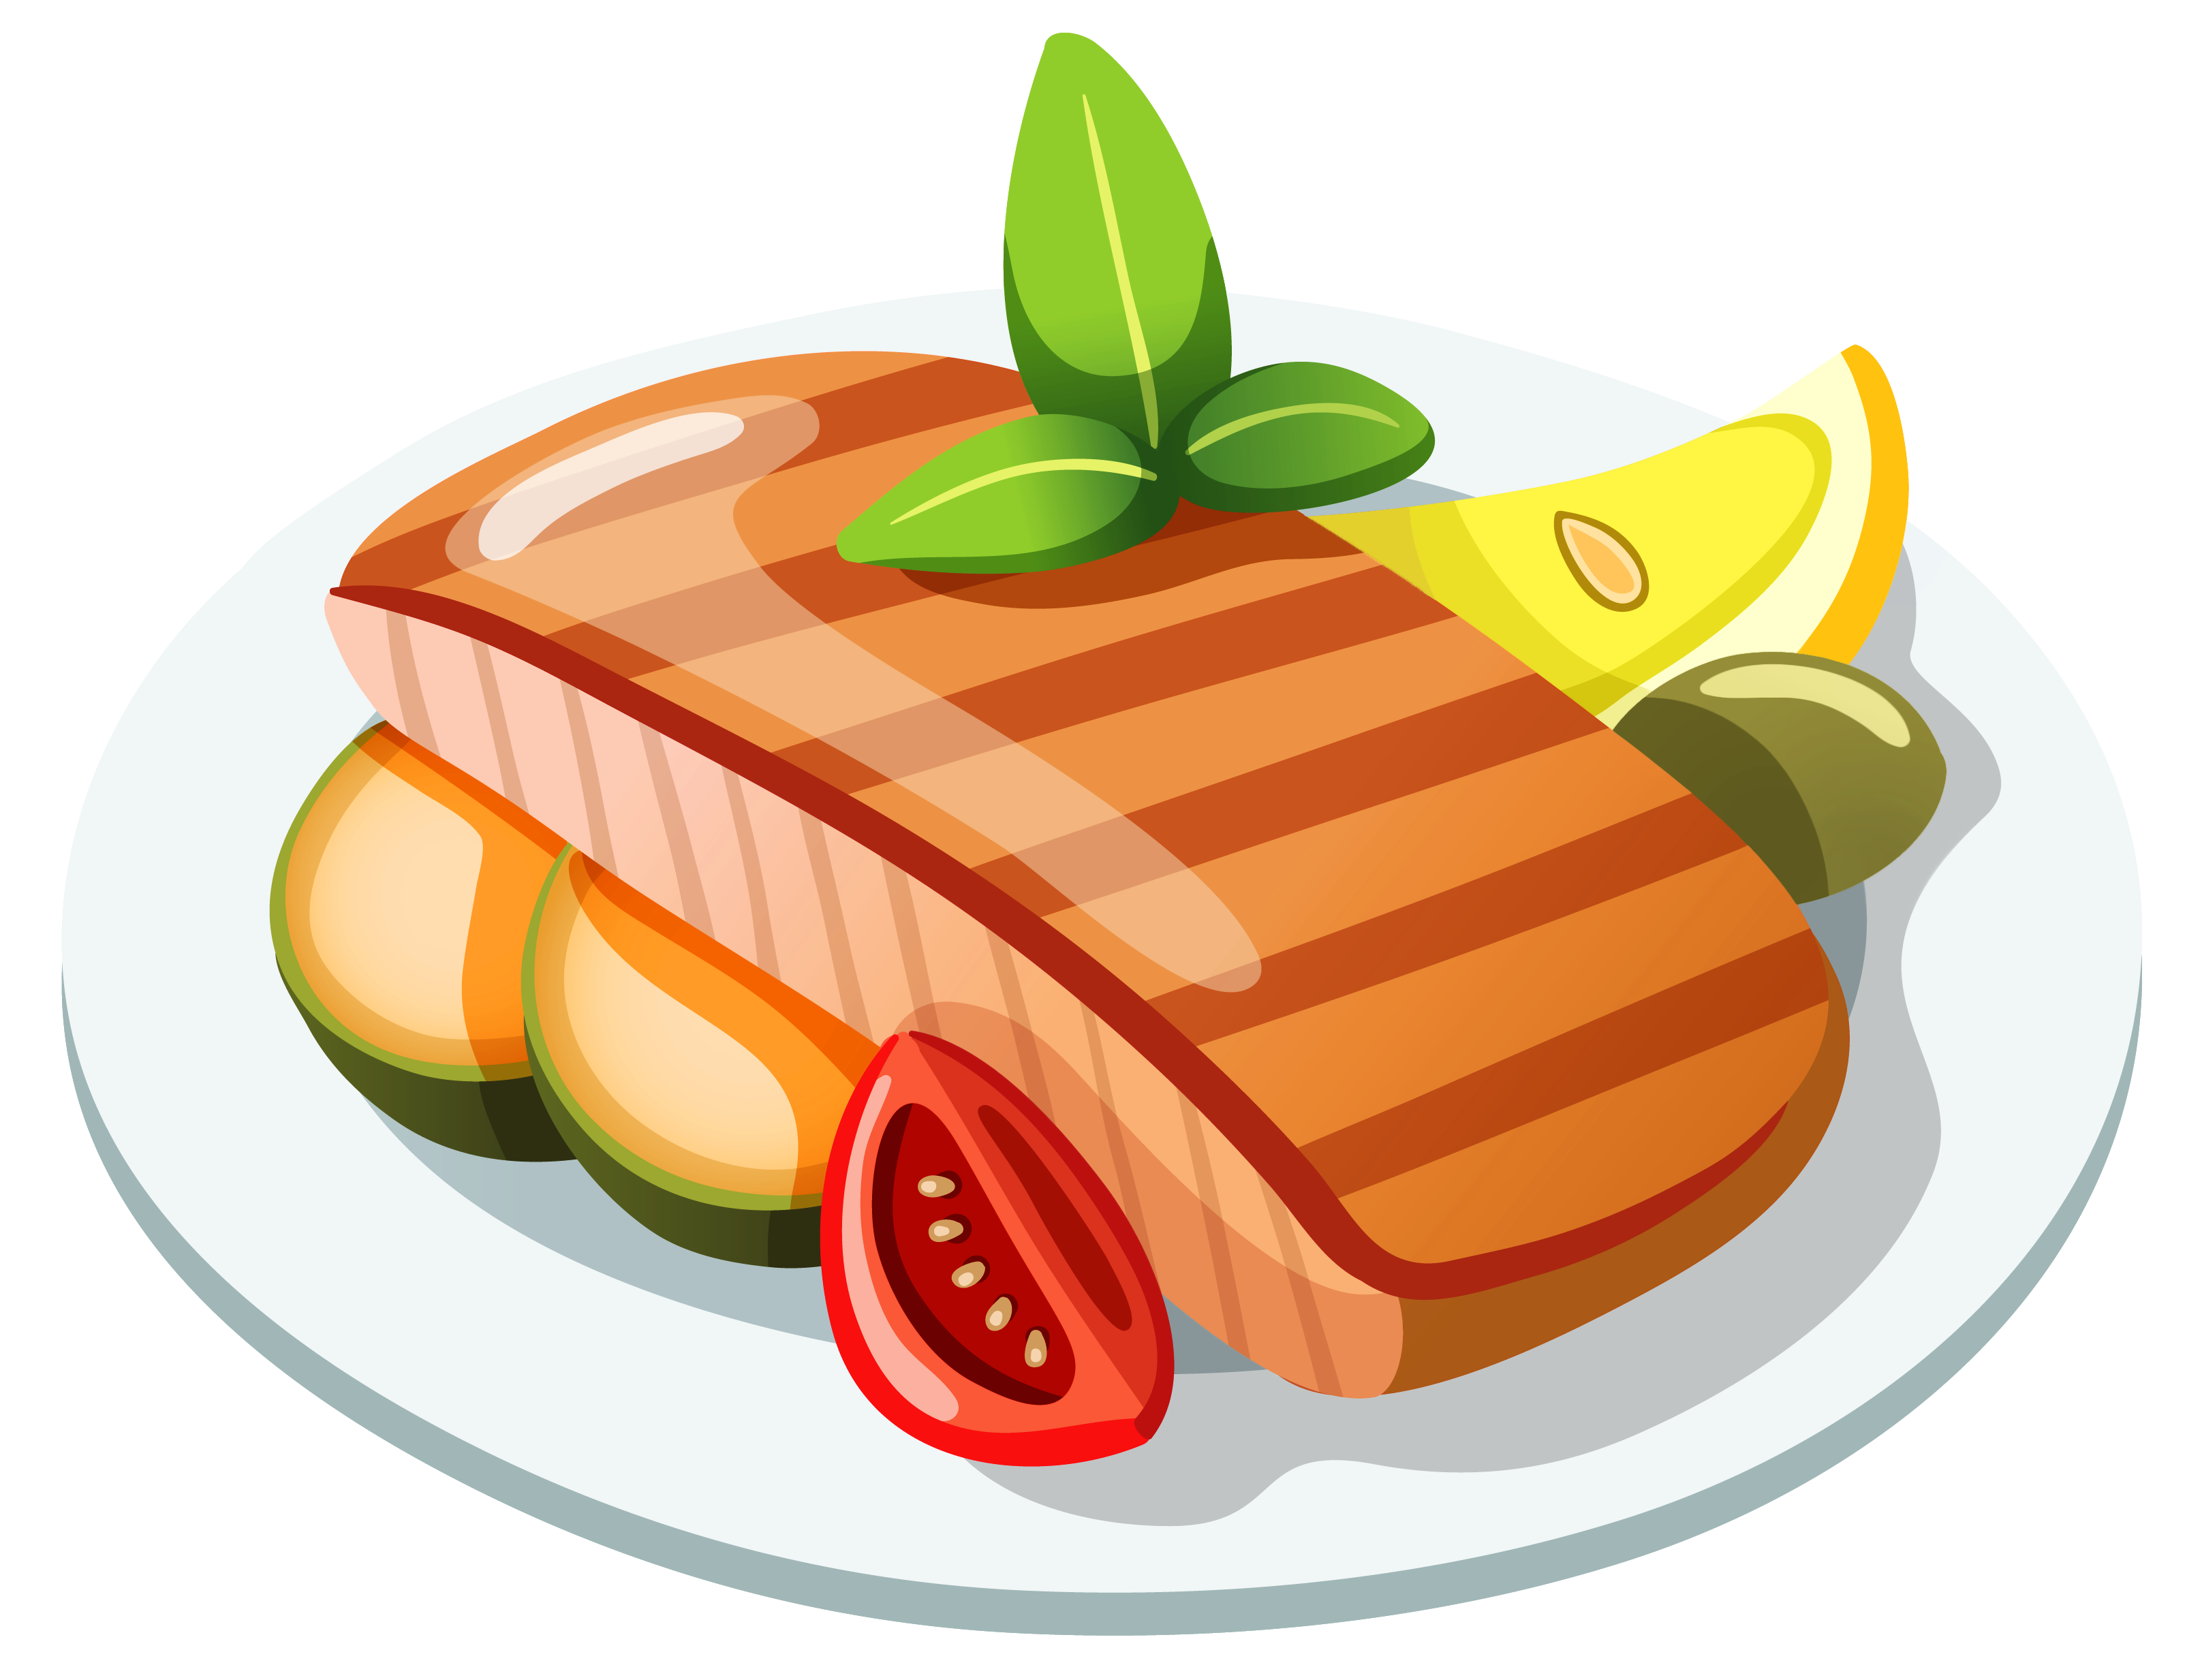 Fast food icon clipart image black and white library Food Icon - Grilled Steak PNG Clipart png download - 3232*2466 ... image black and white library